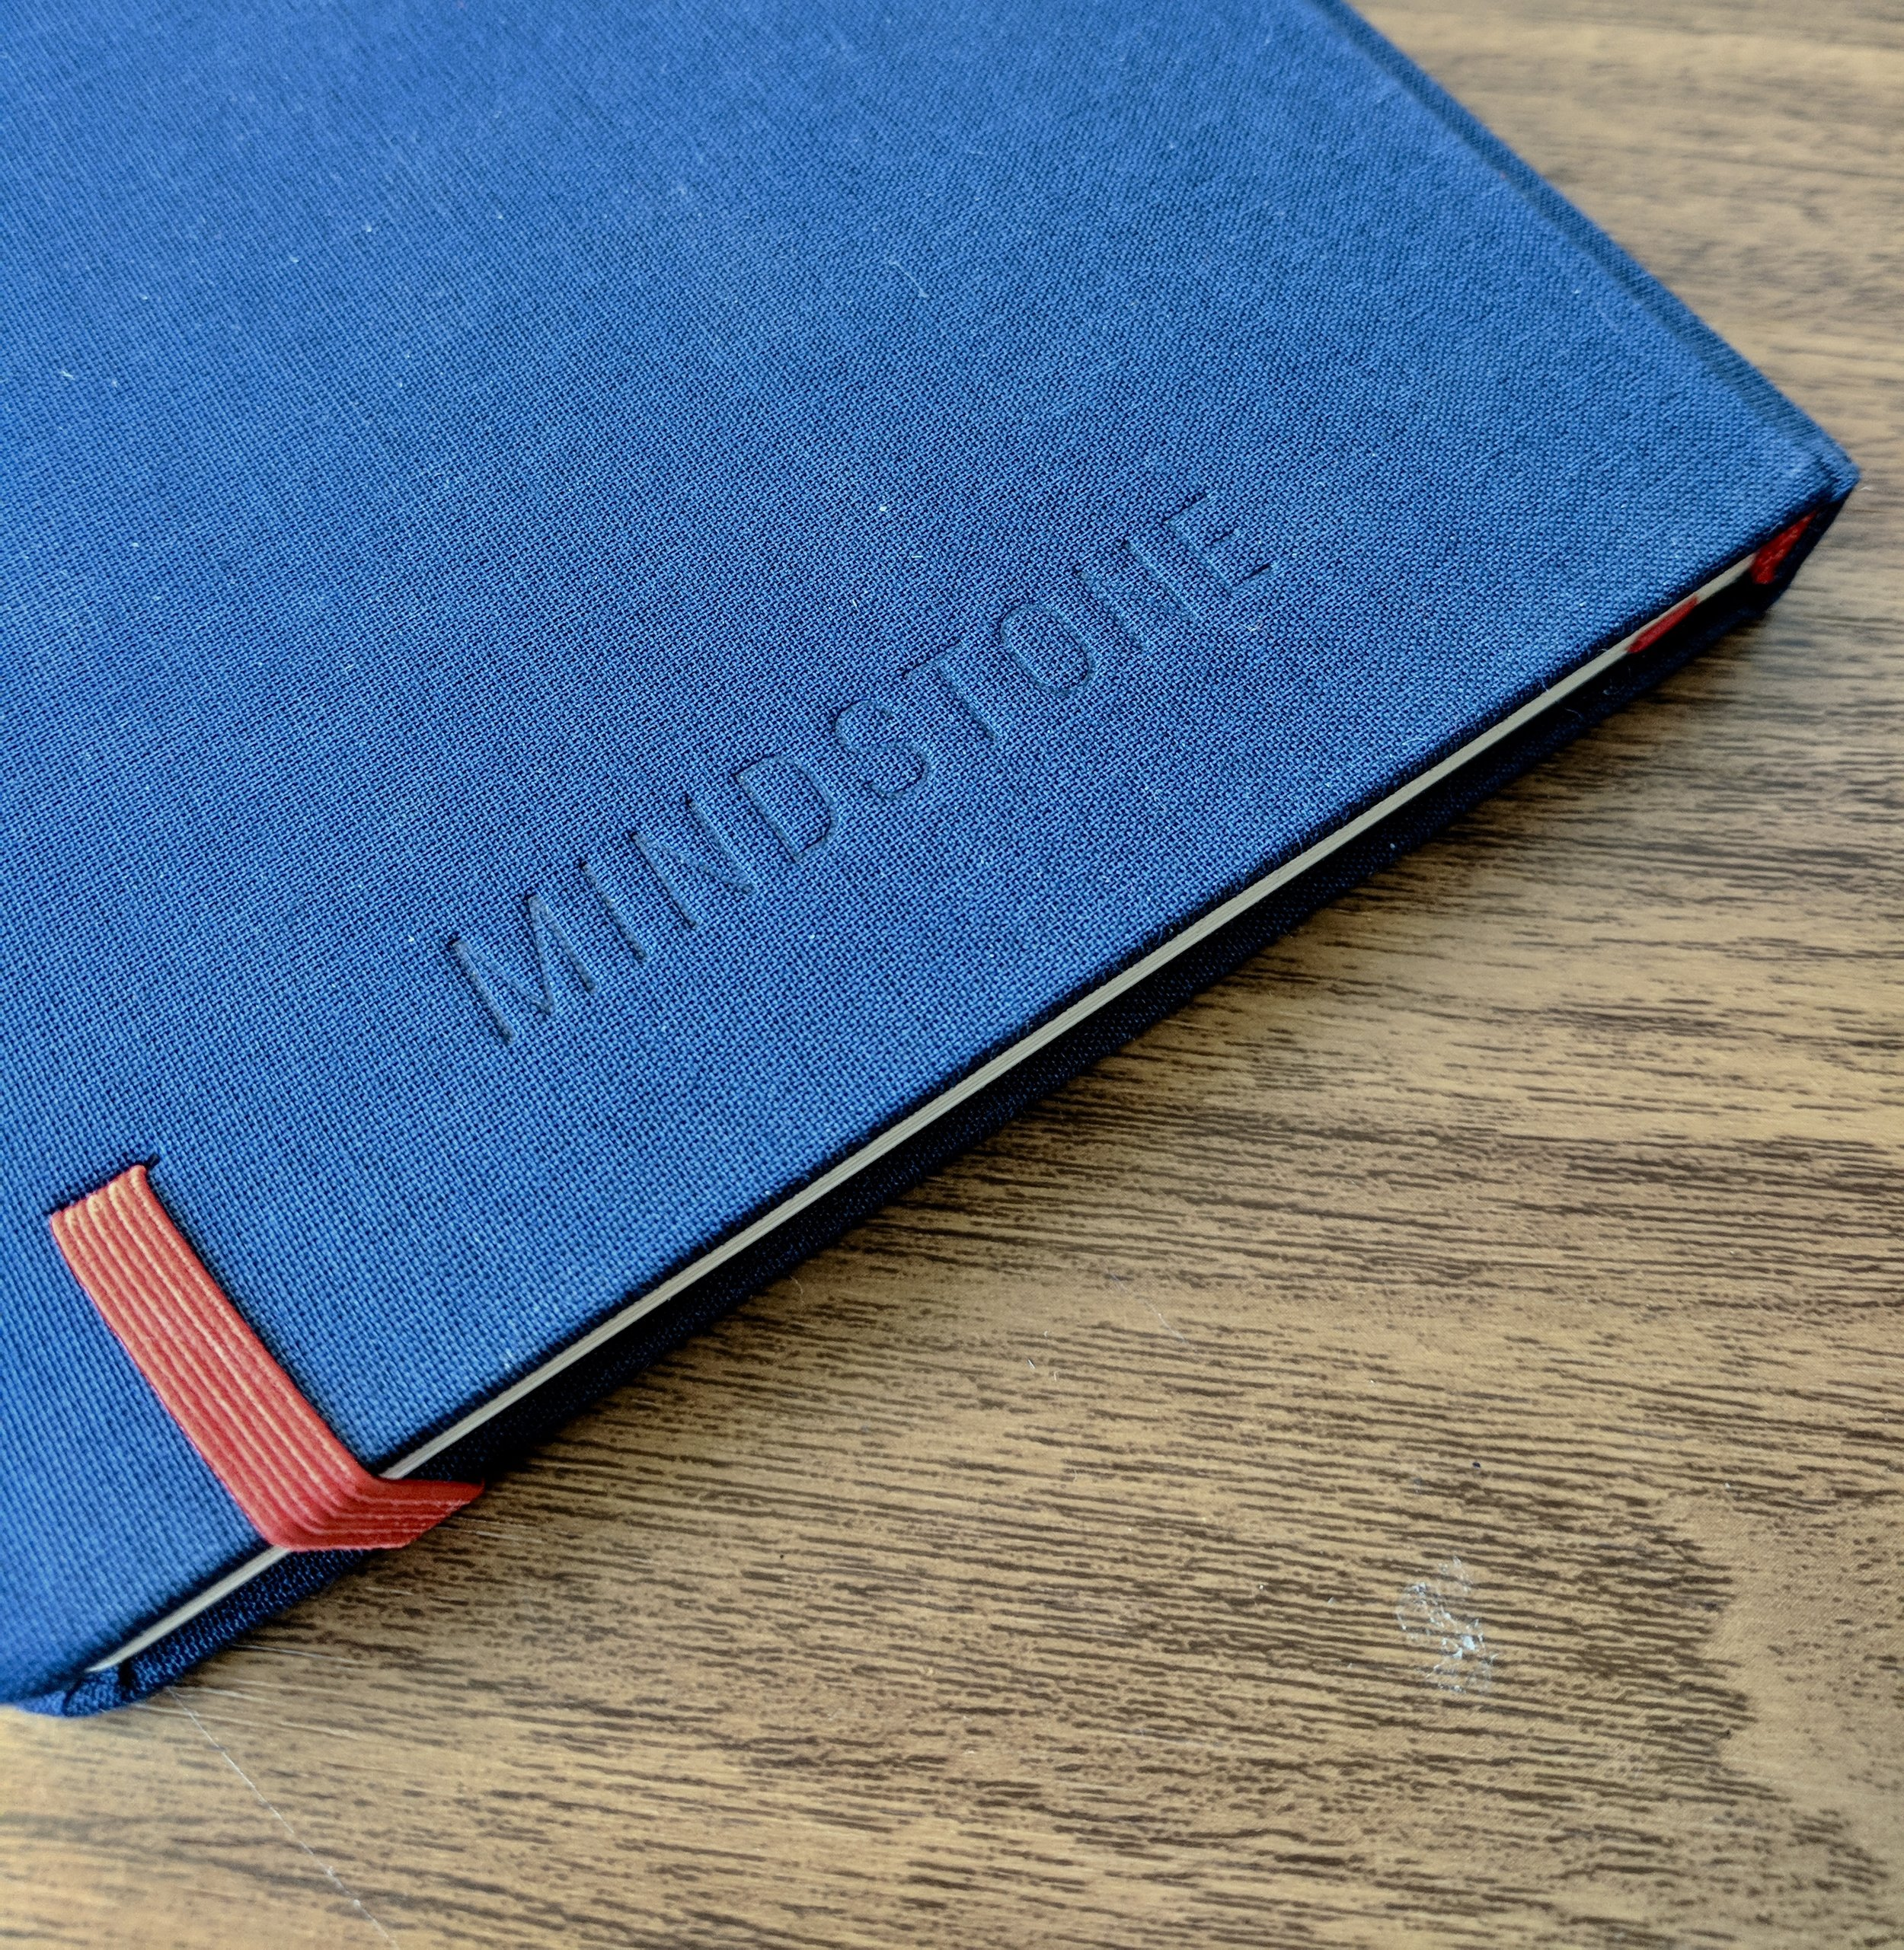 There is little to no branding on the outside of the Mindstone Notebook, save for an imprint on the back cover. Very understated.